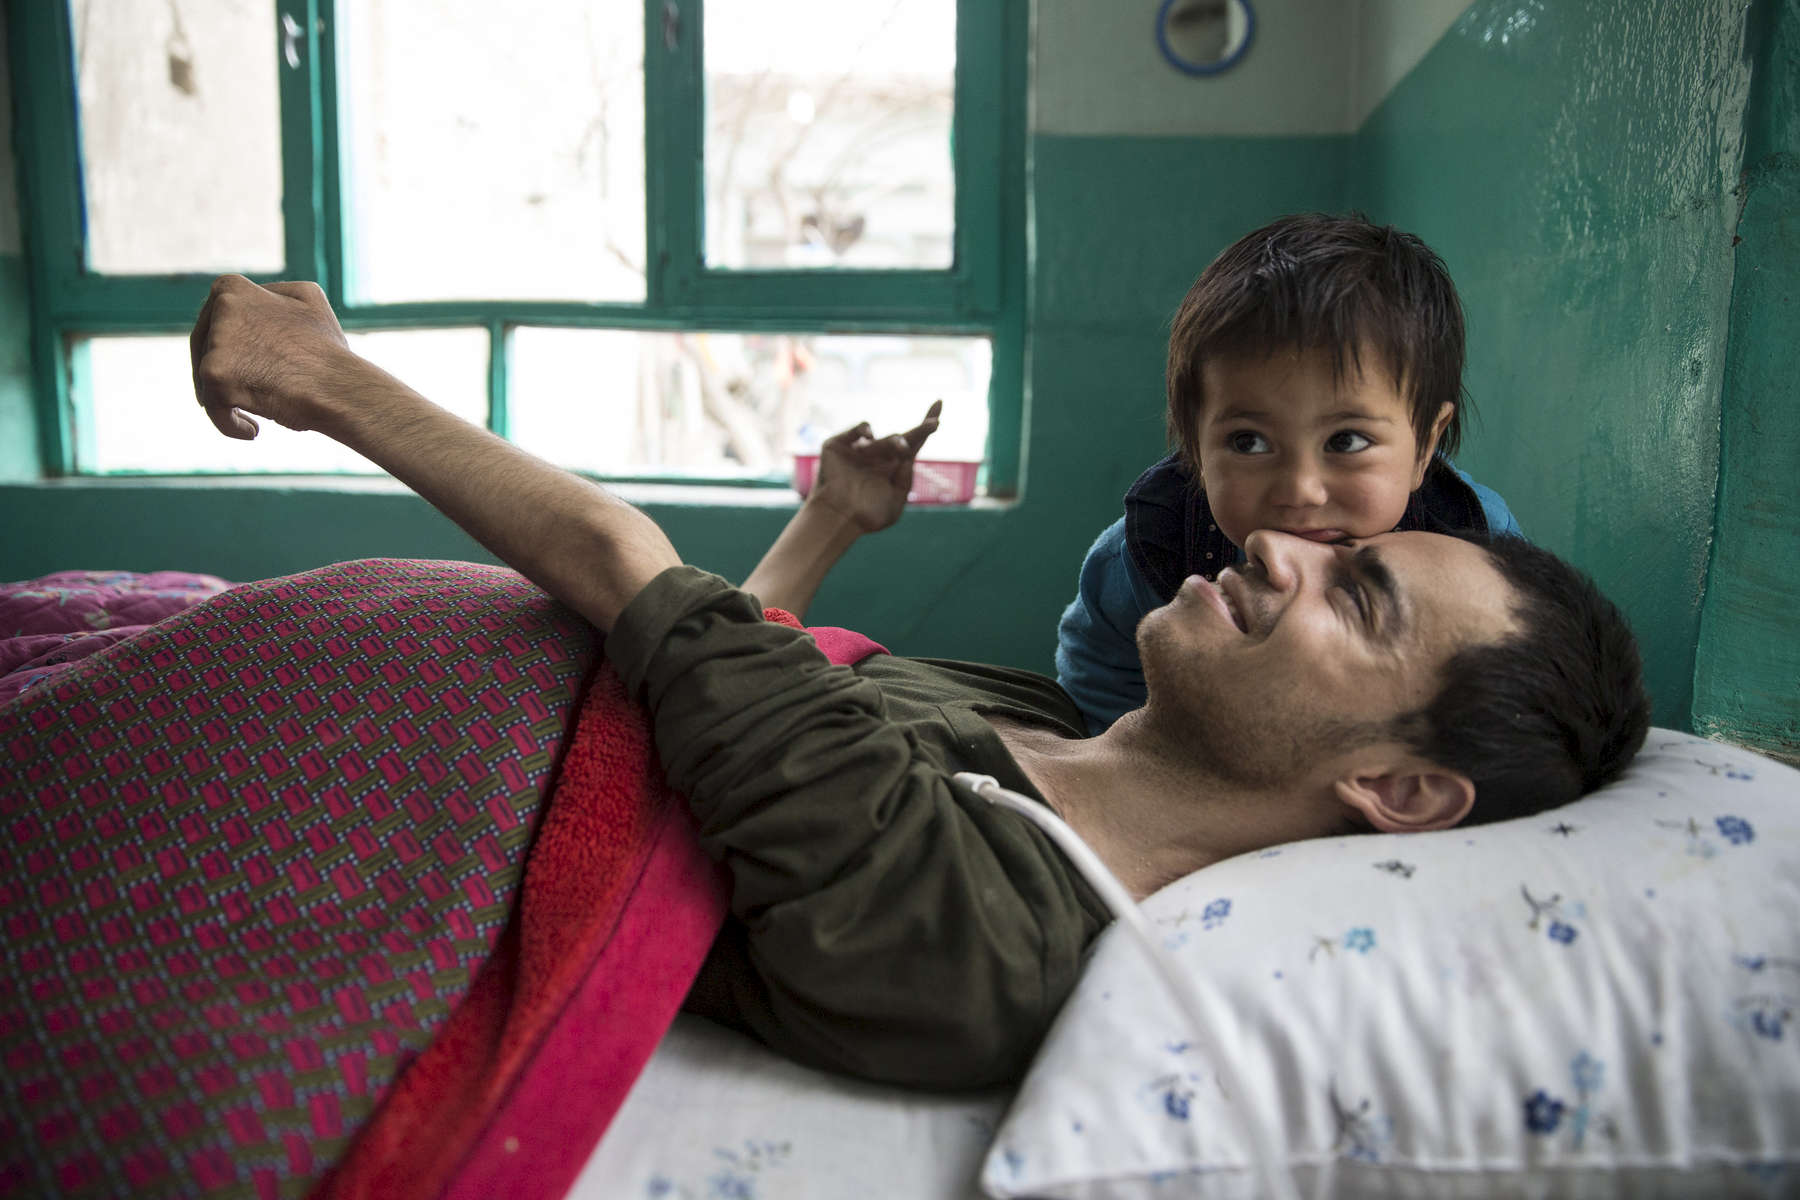 KABUL, AFGHANISTAN -MARCH 22, 2016:  Khuja Fareed, 24, a quadriplegic enjoys some time with his niece Roksar, 3 and a half years,  at his home in Kabul on March 22, 2016. He is now a quadrapalegic injured while delivering supplies to a military base truck driver for the US military until he was shot in the neck during fighting between the Taliban and the US military. With no financial help from the US military or the Afghan government Khuja depends on his family to care for him.Every year the UN comes out with their report documenting the unfortunate carnage from America's longest and most costly war in history. Along with the price tag estimated in the hundreds of billions, the human toll from a 2015 UN Assistance Mission To Afghanistan (UNAMA) report stated the number of Afghan civilians killed and wounded surpassed 11,000.  which was the deadliest on record for civilians in Afghanistan since the US-led invasion more than 14 years ago.